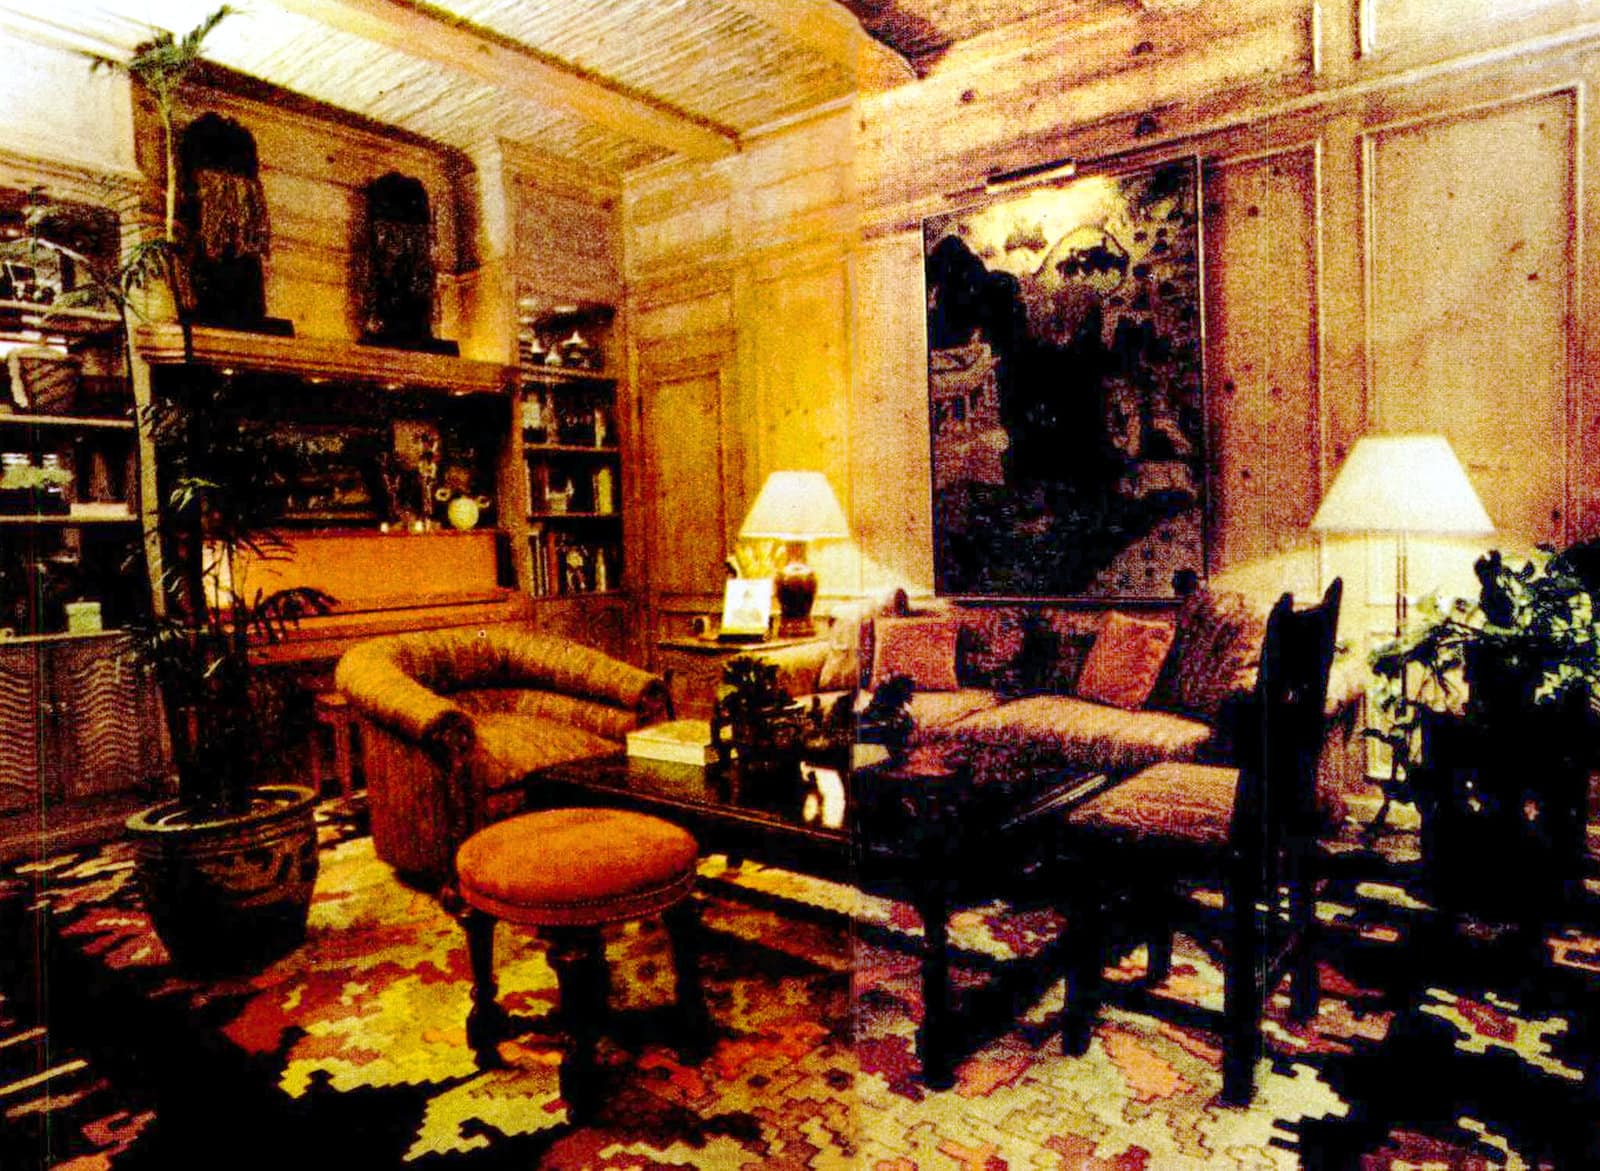 Inside the home of singer Johnny Mathis - seen in 1976 (1)